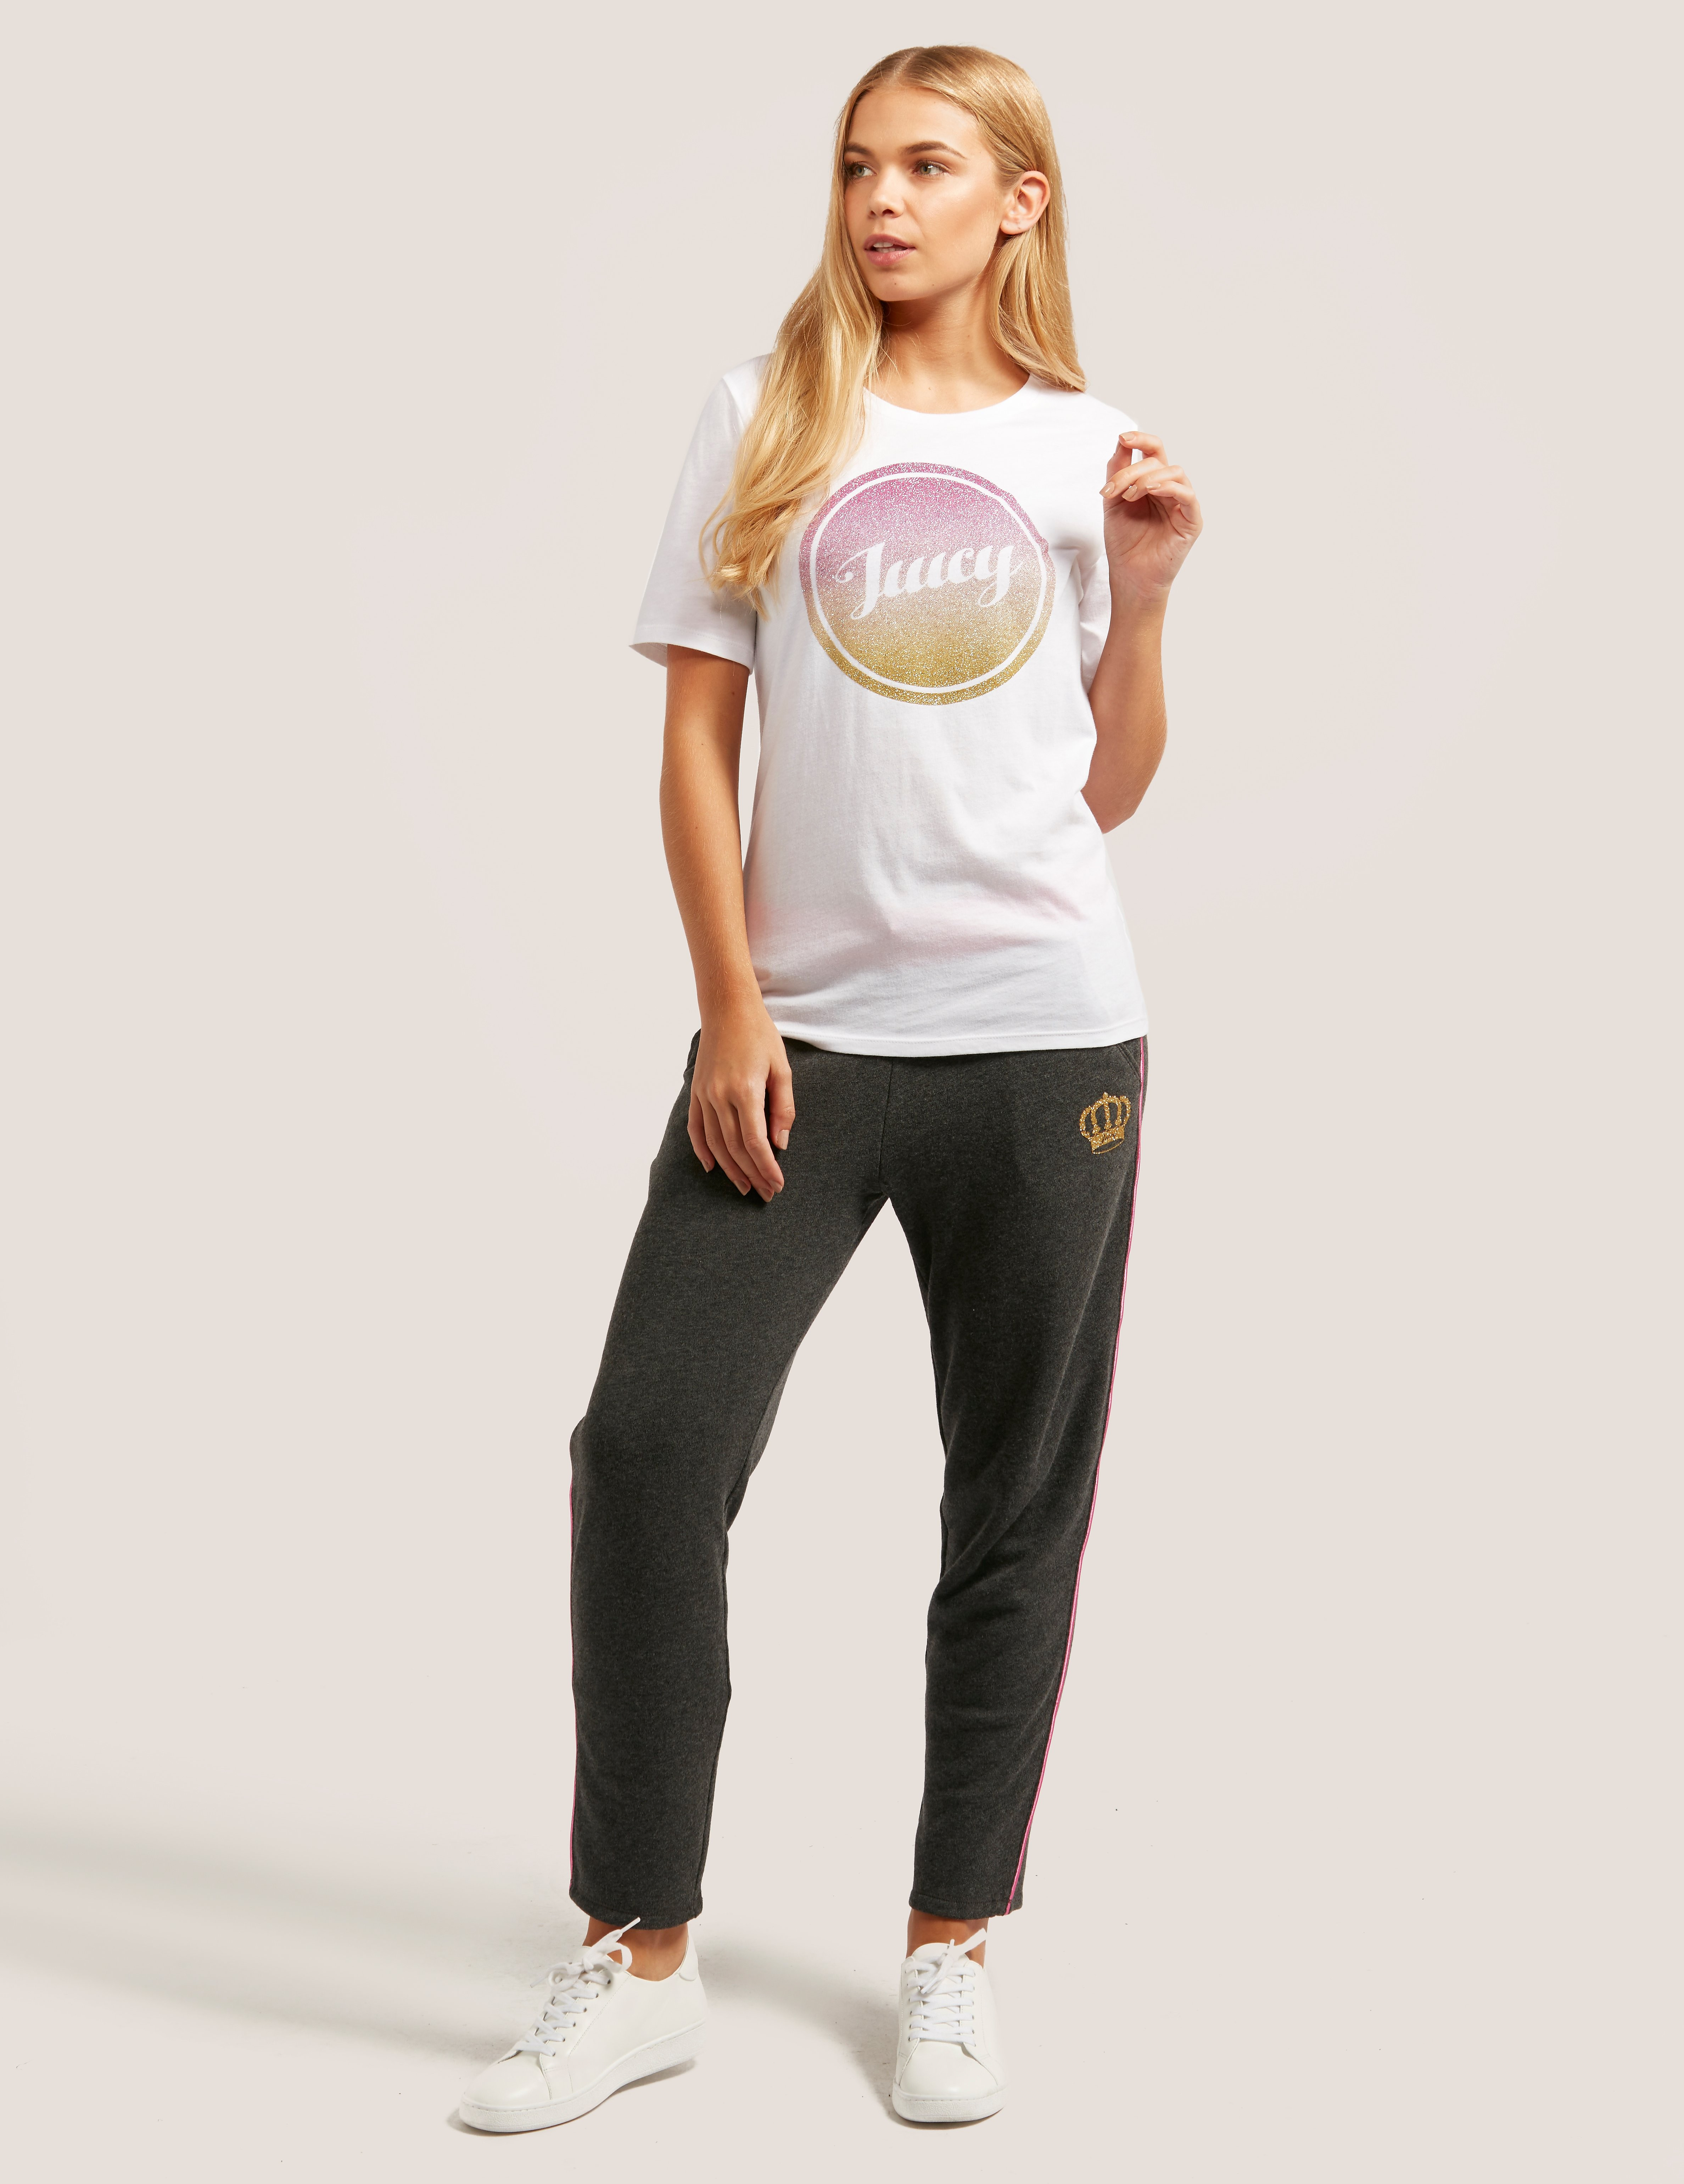 Juicy Couture Juicy Glitter T-Shirt